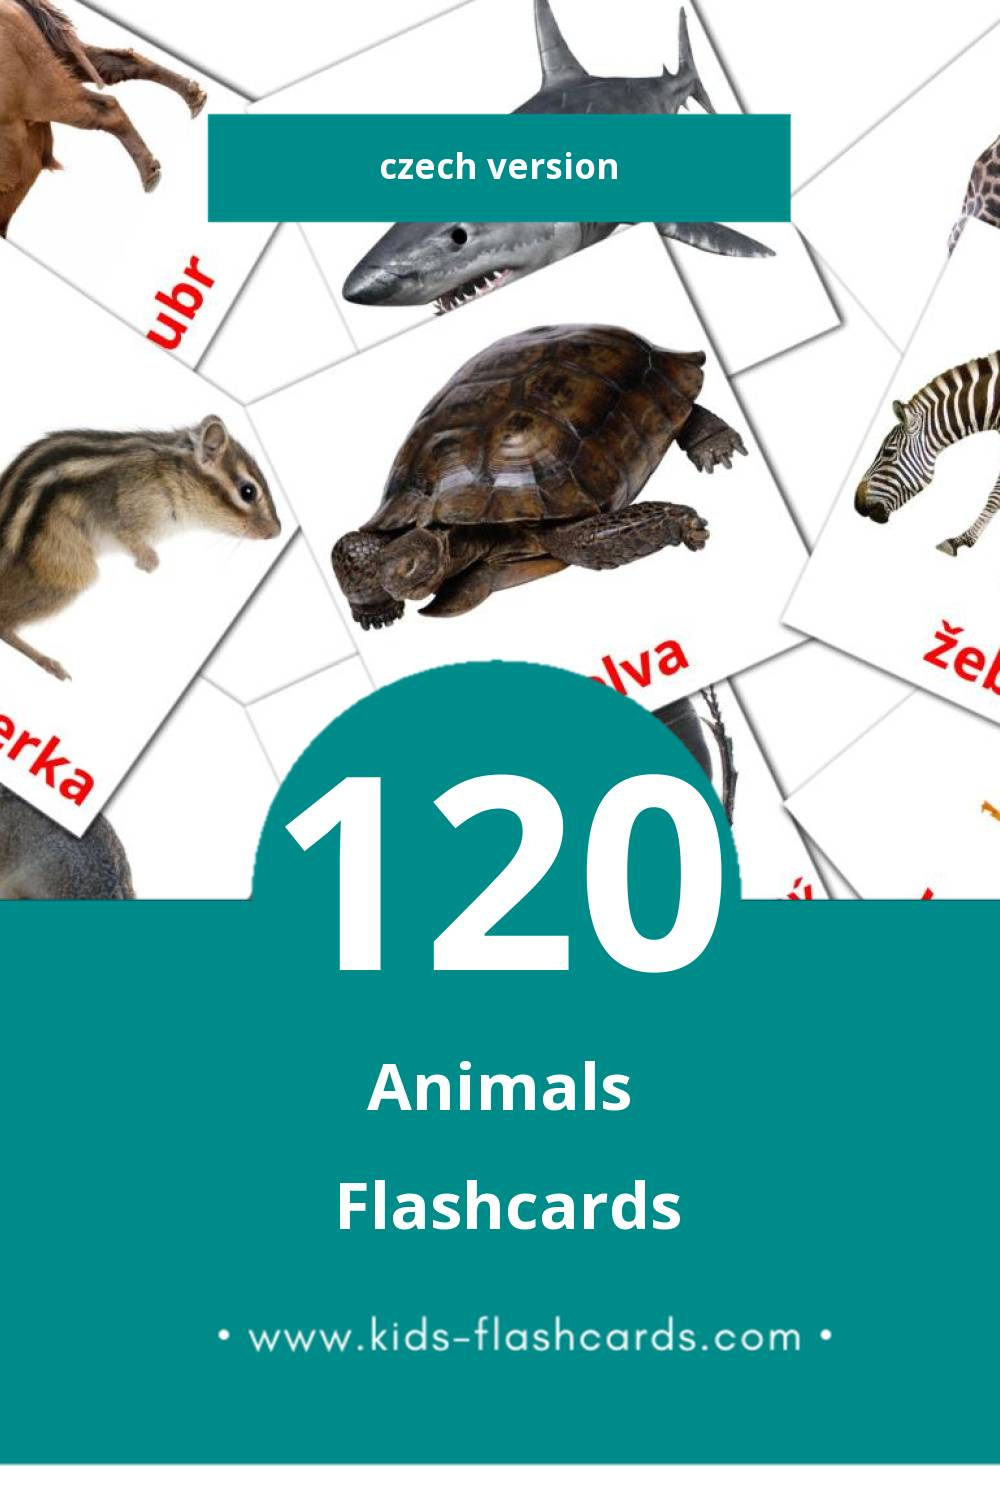 Visual Zvířata Flashcards for Toddlers (98 cards in Czech)